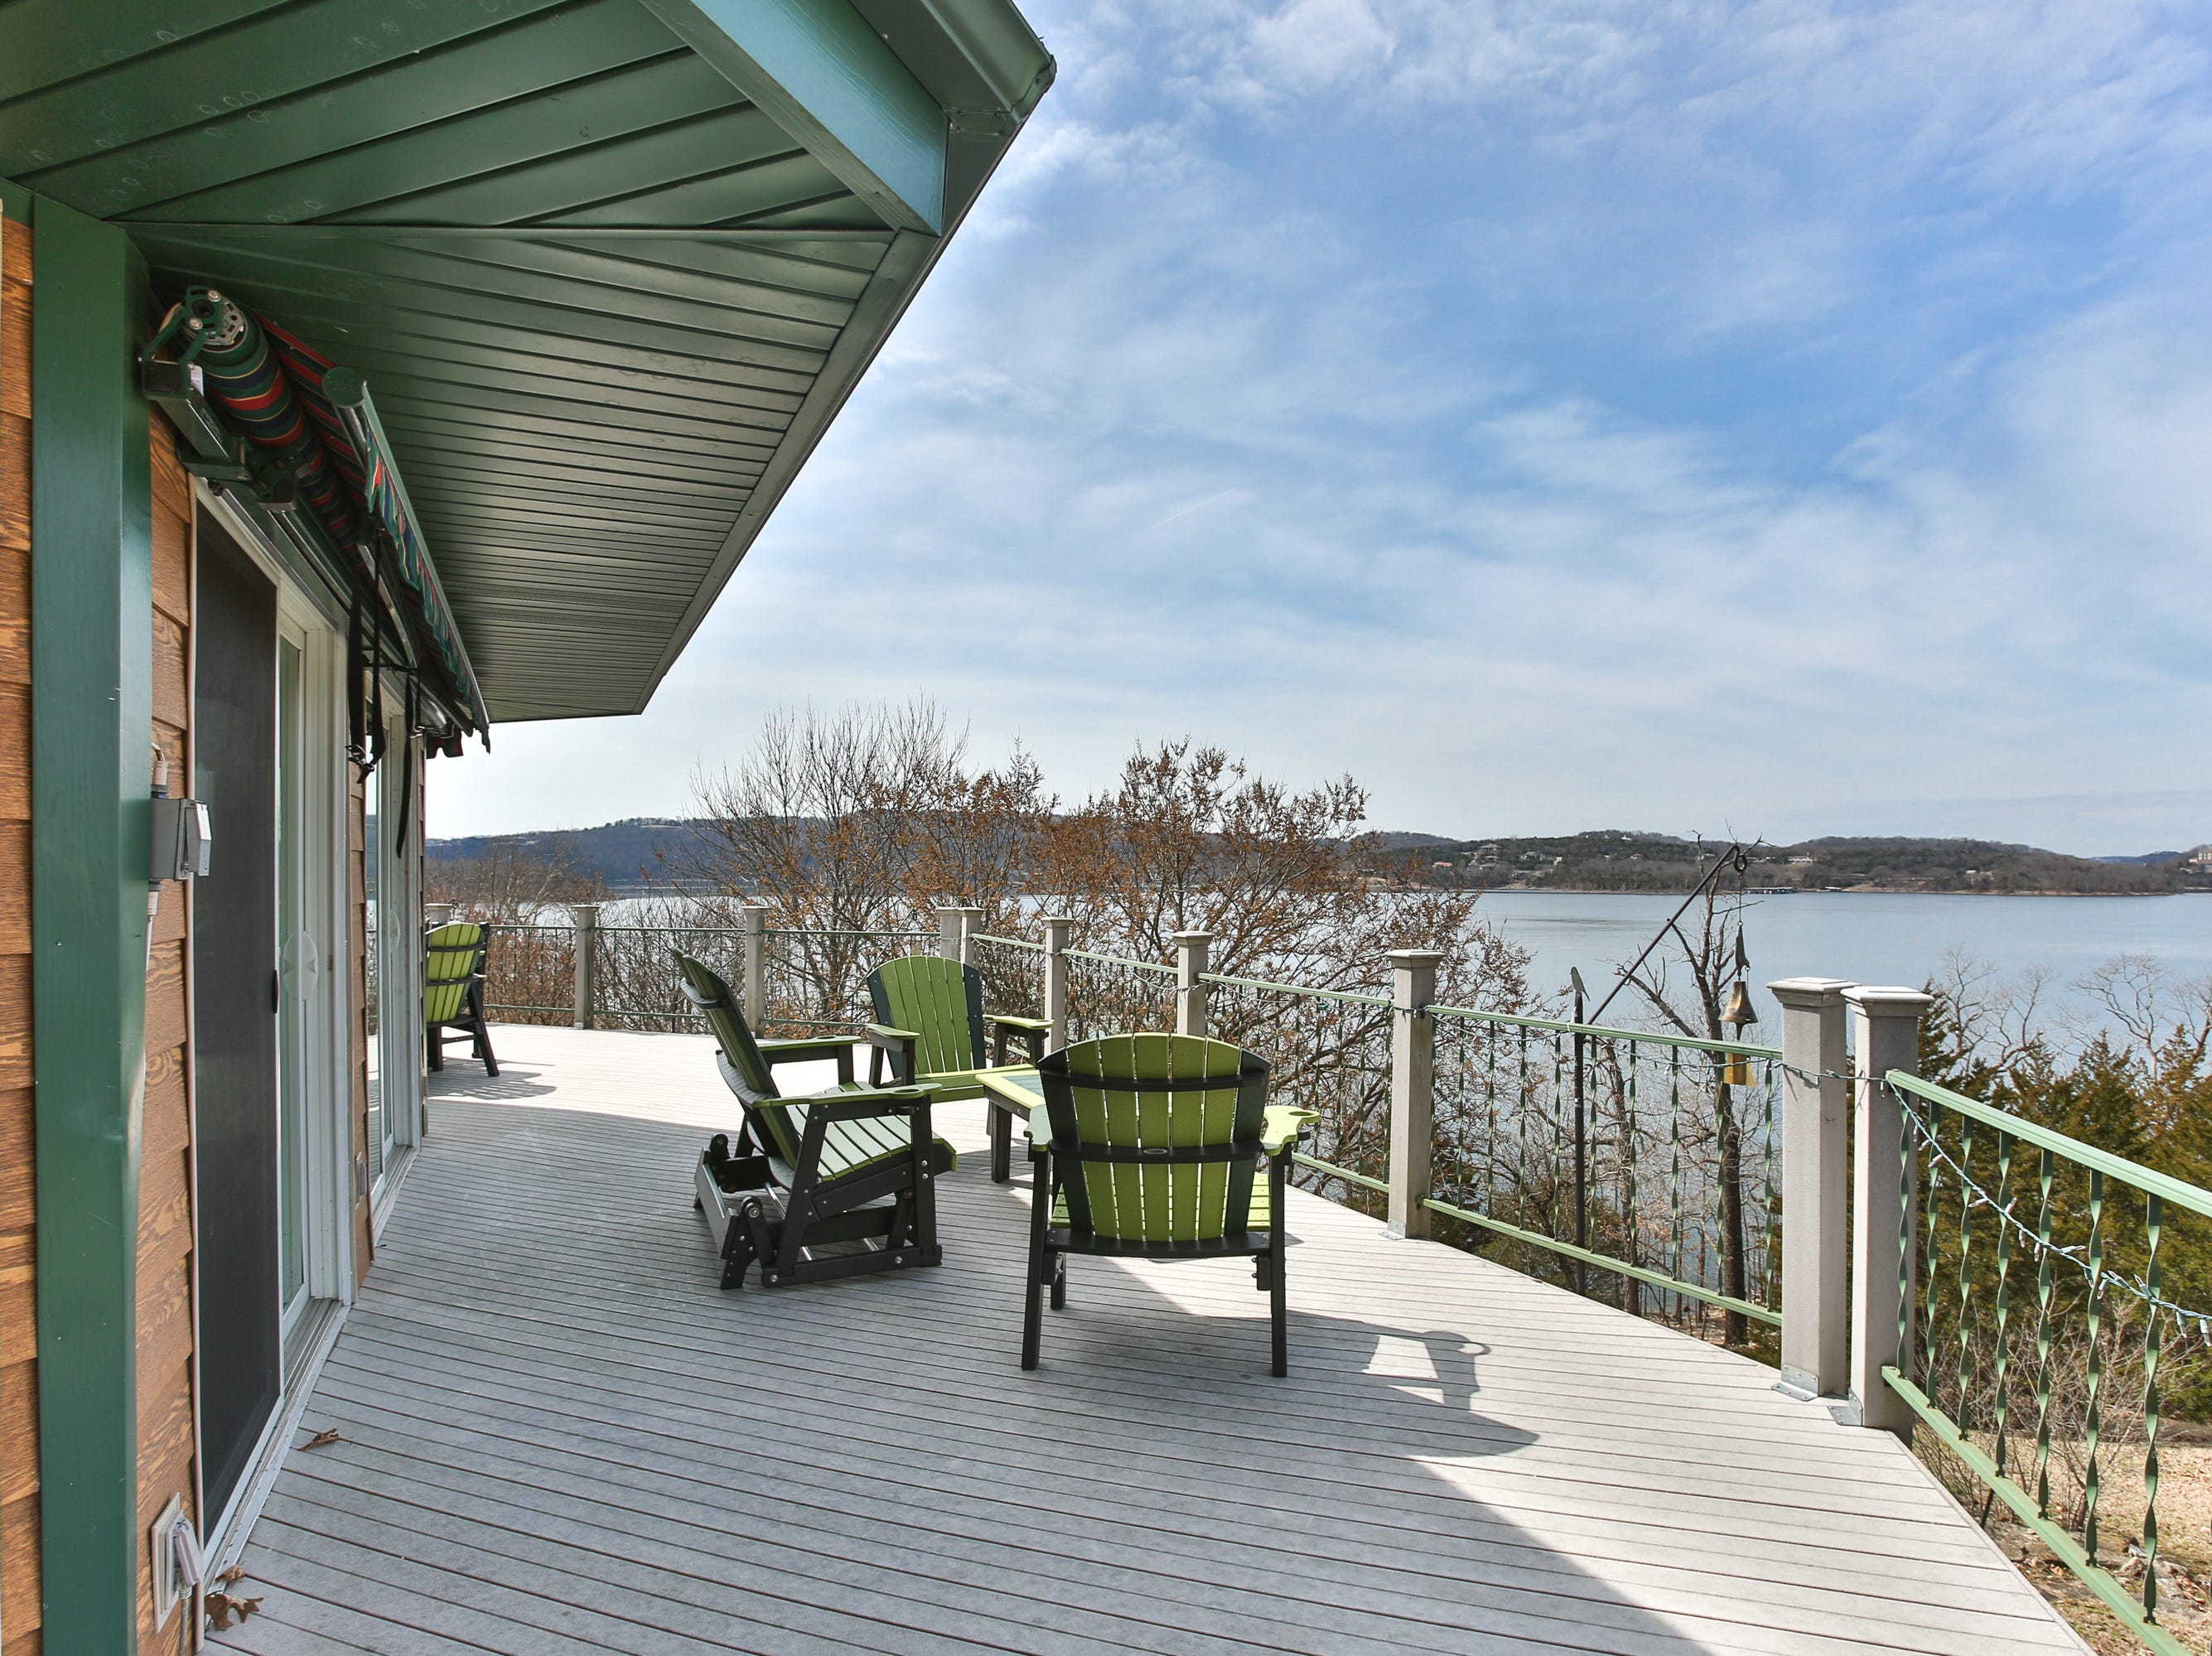 There's no such thing as a bad view from the Kembells' octagonal lake house.